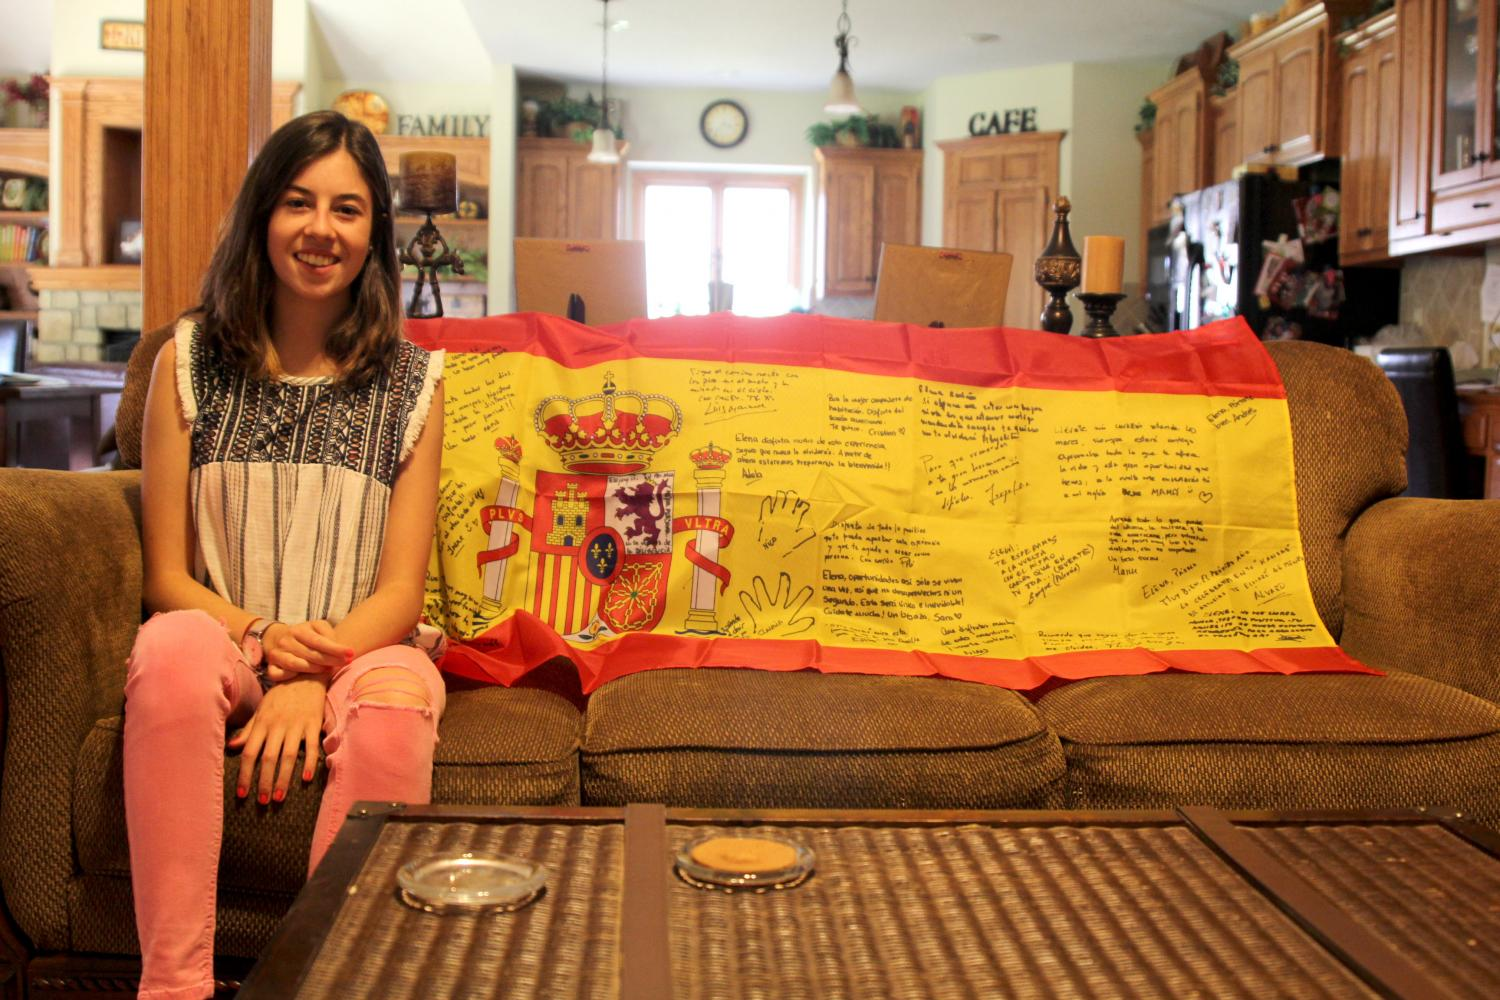 While in her host family's house, foreign exchange student and senior Elena Ortega Camazón poses in front of the Spanish flag signed by her family on Monday, Sept. 11.